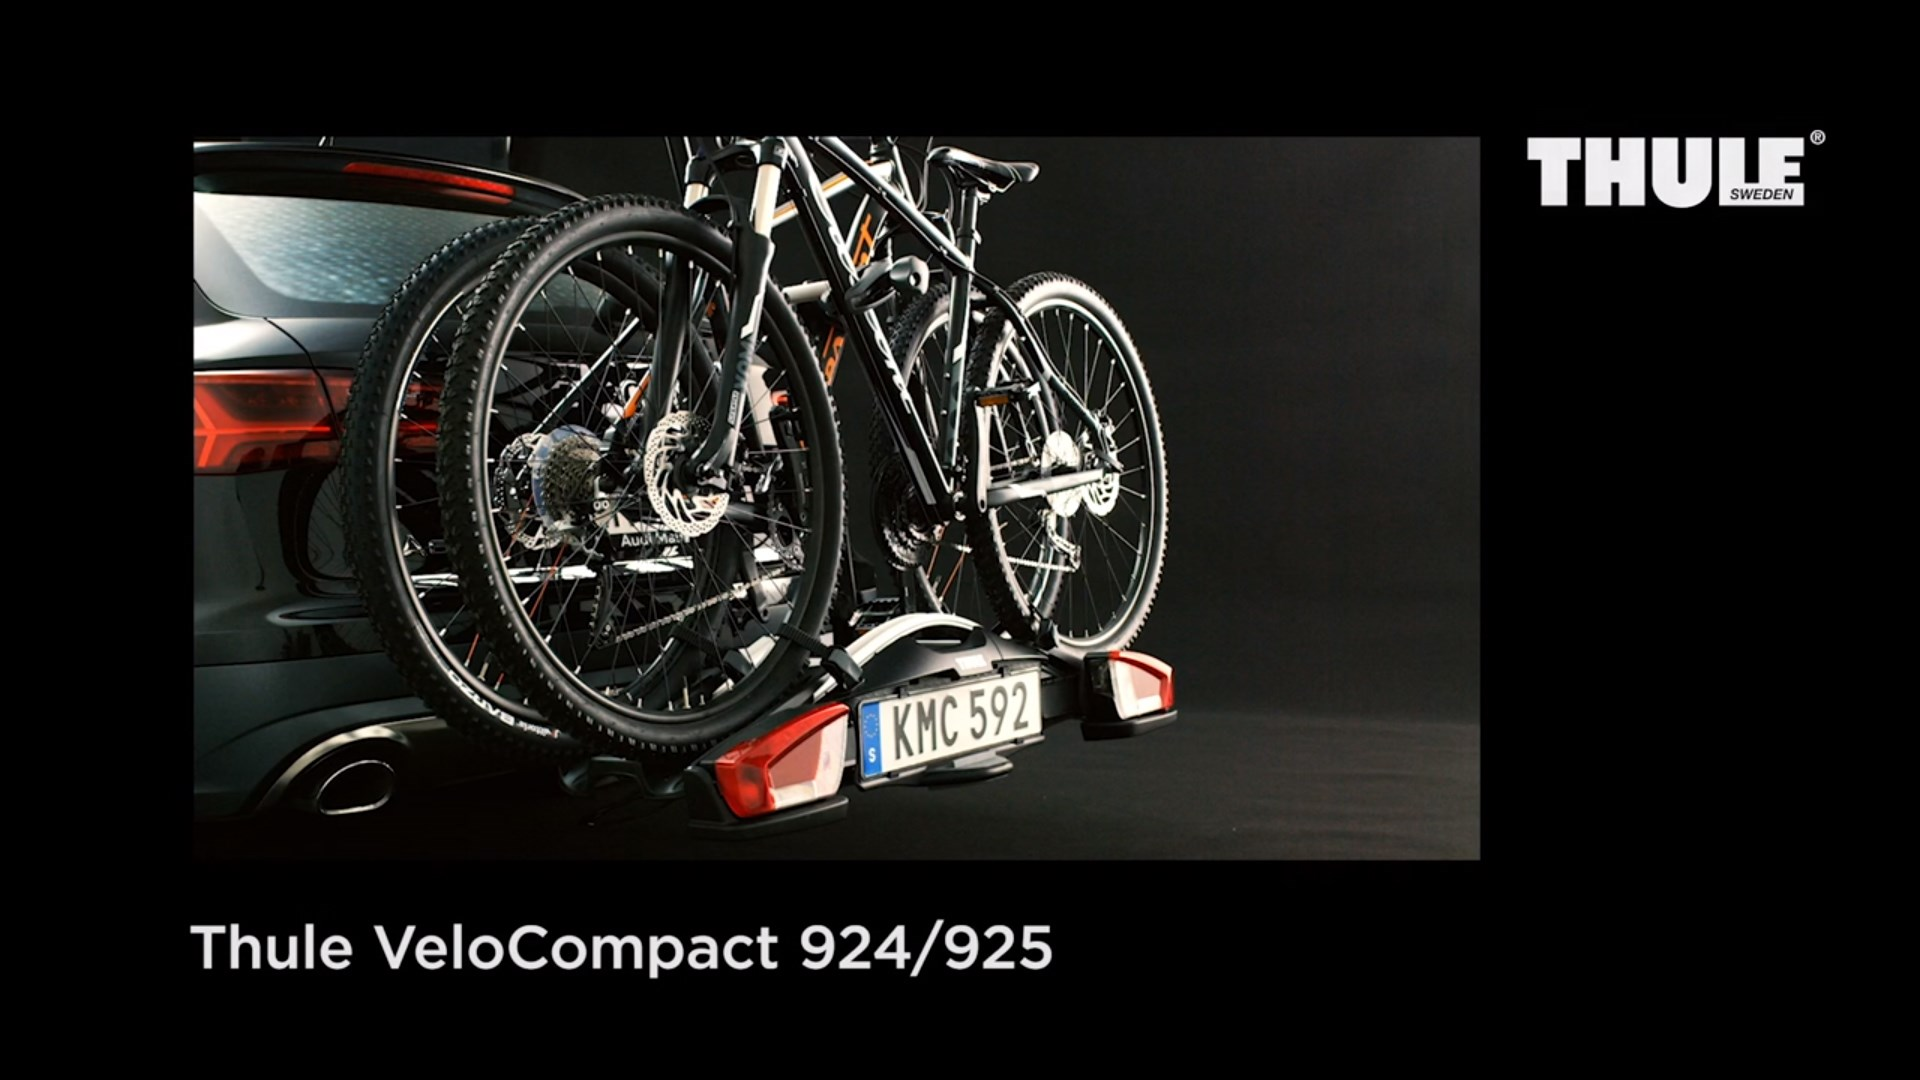 Towbar Bike Rack - Thule VeloCompact 924/925